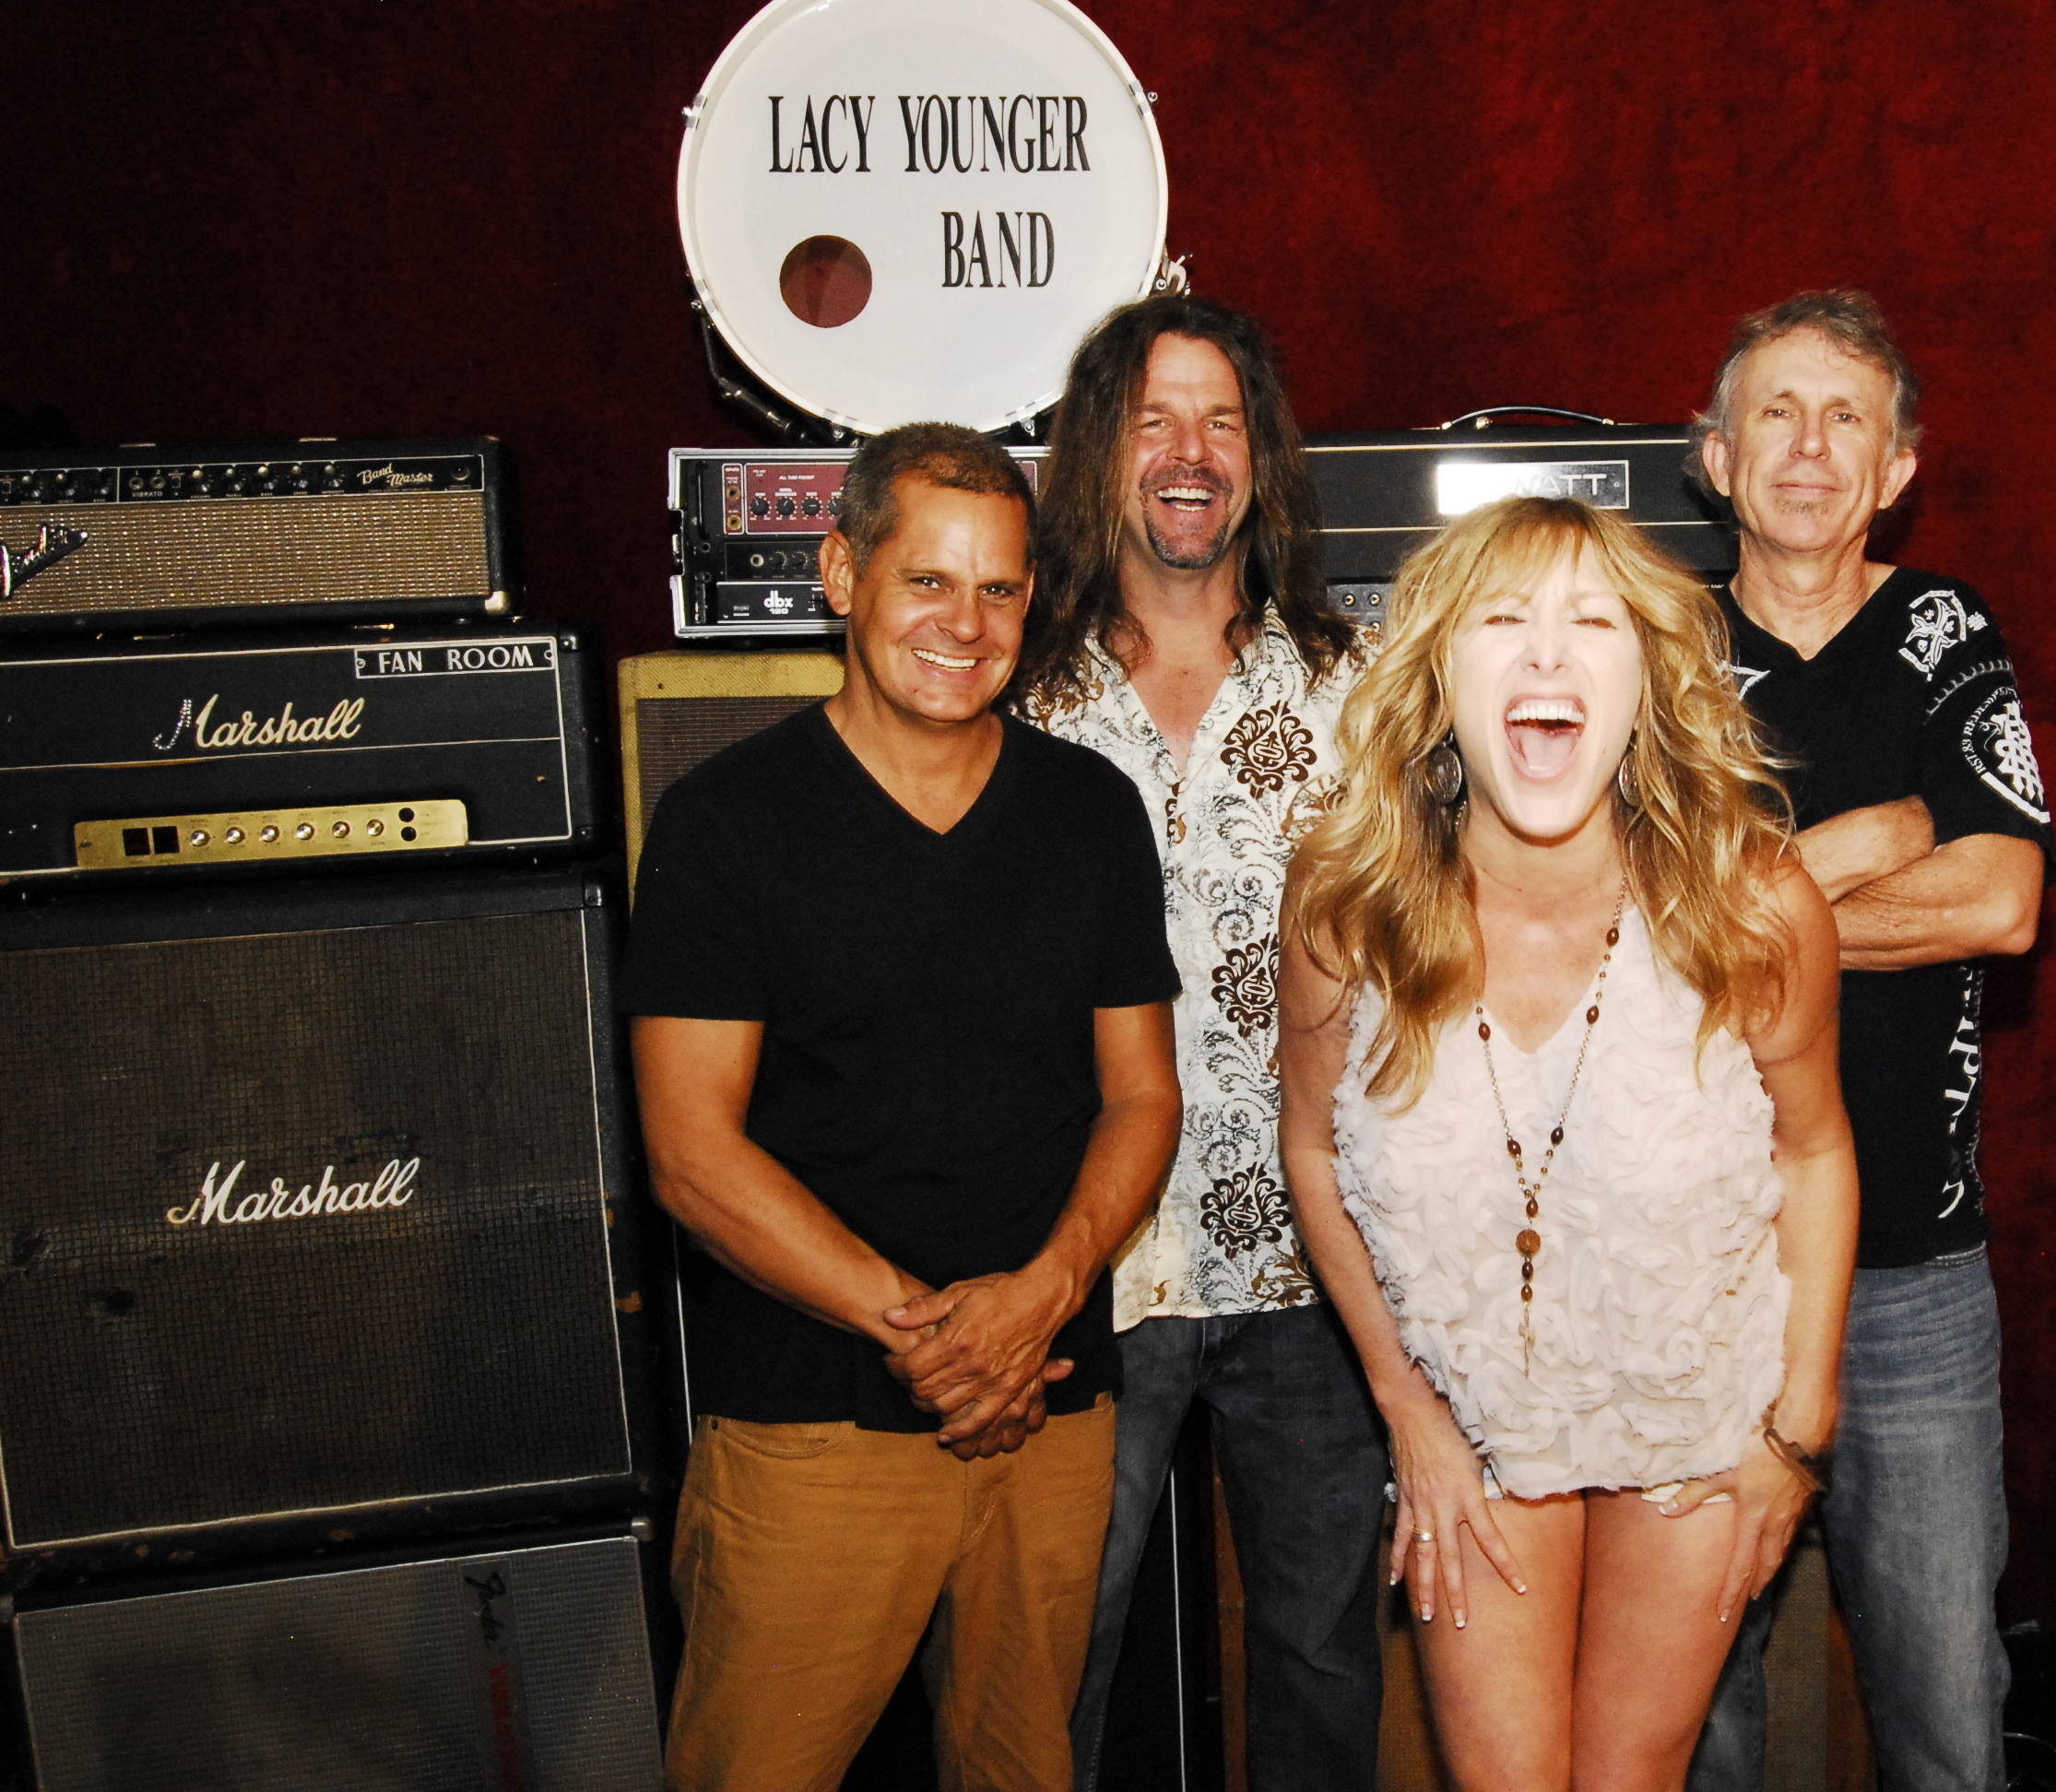 Lacy Younger & Band